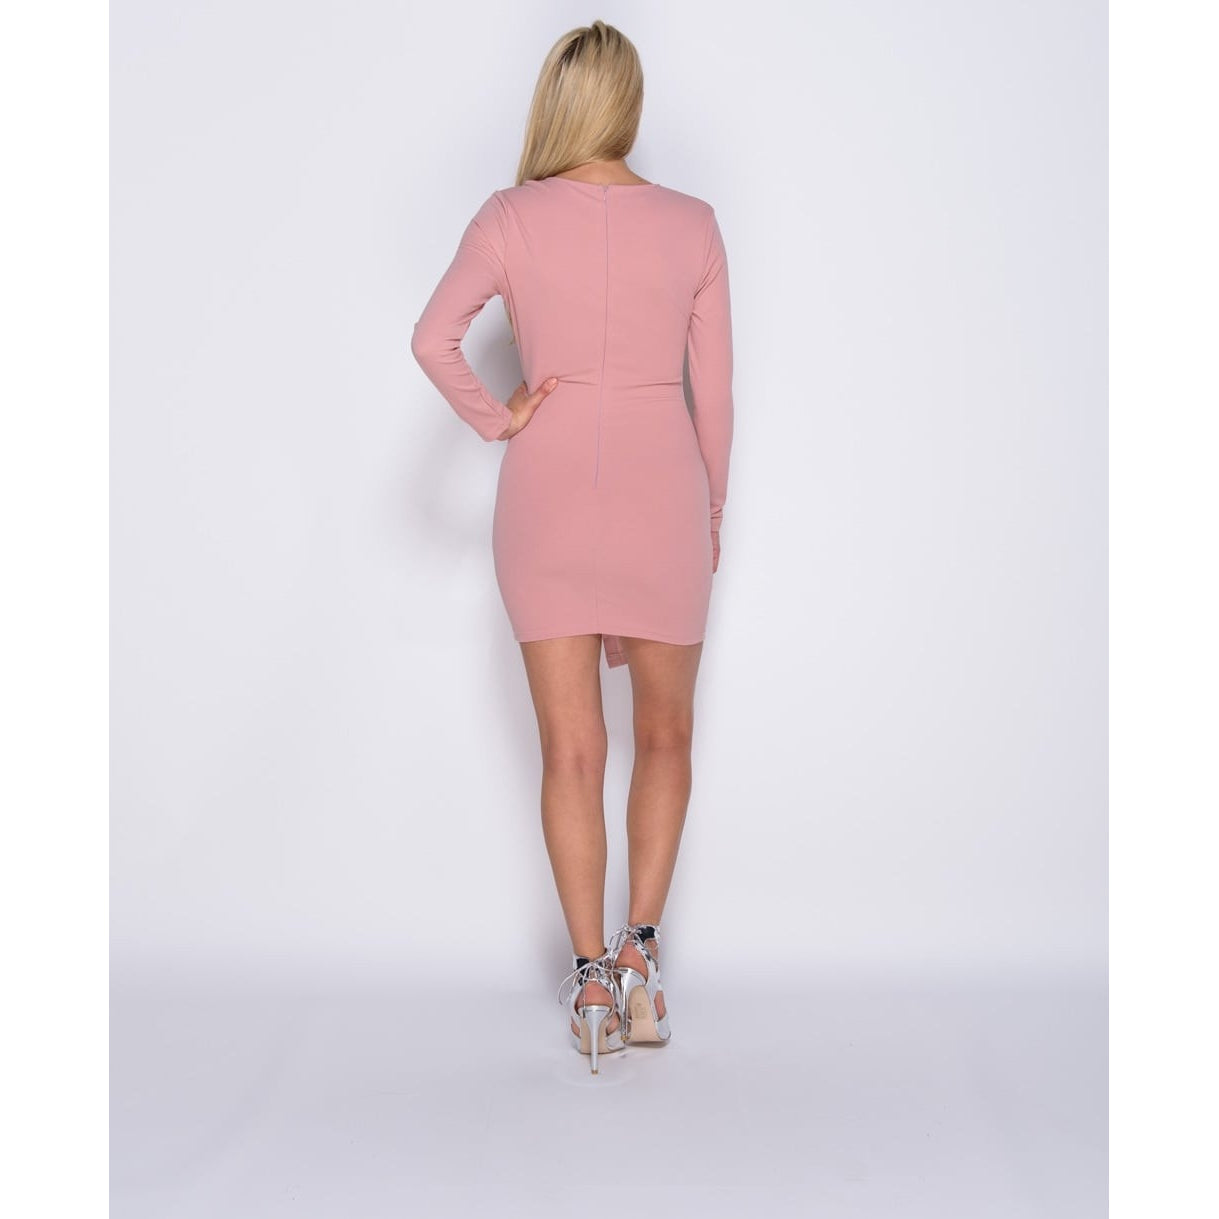 Rose Pink Lace Up Detail Bodycon Mini Dress